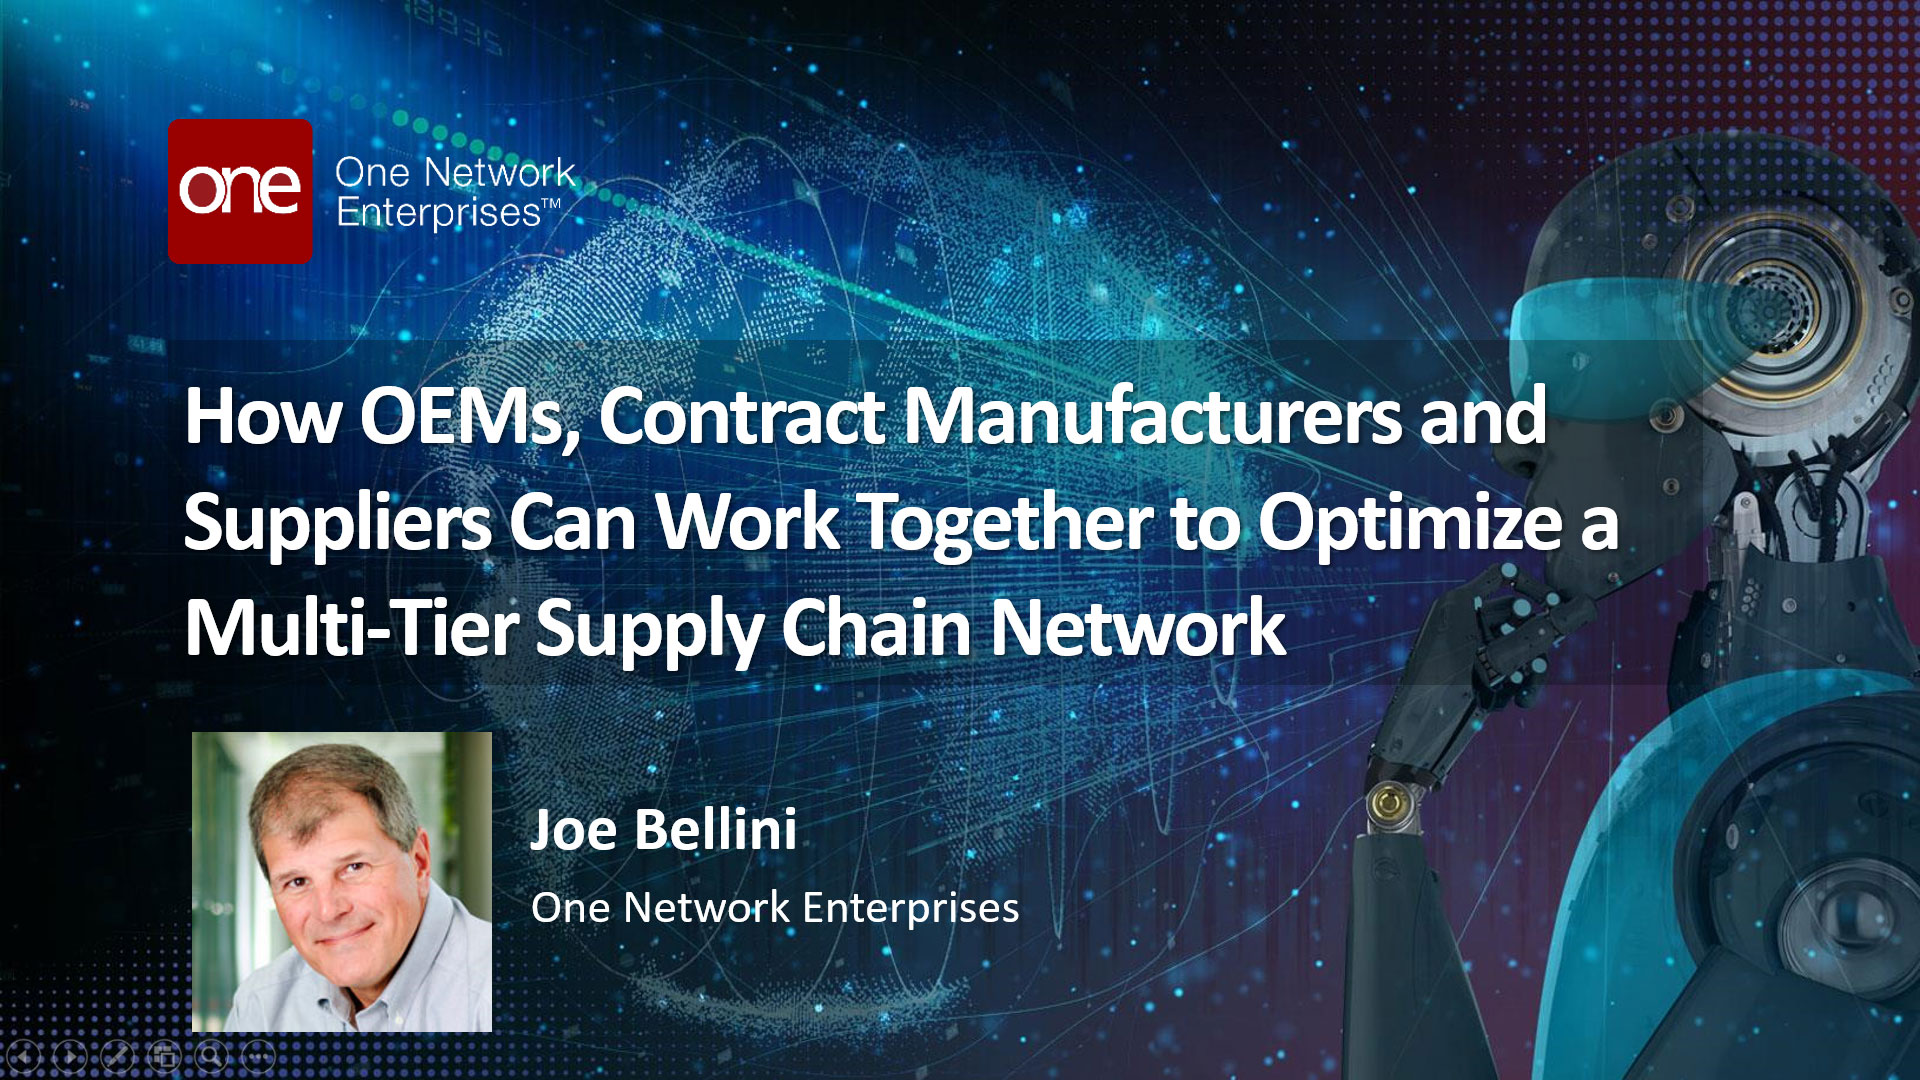 Download the Presentation: Optimizing Multi-Tier Supply Chain Networks